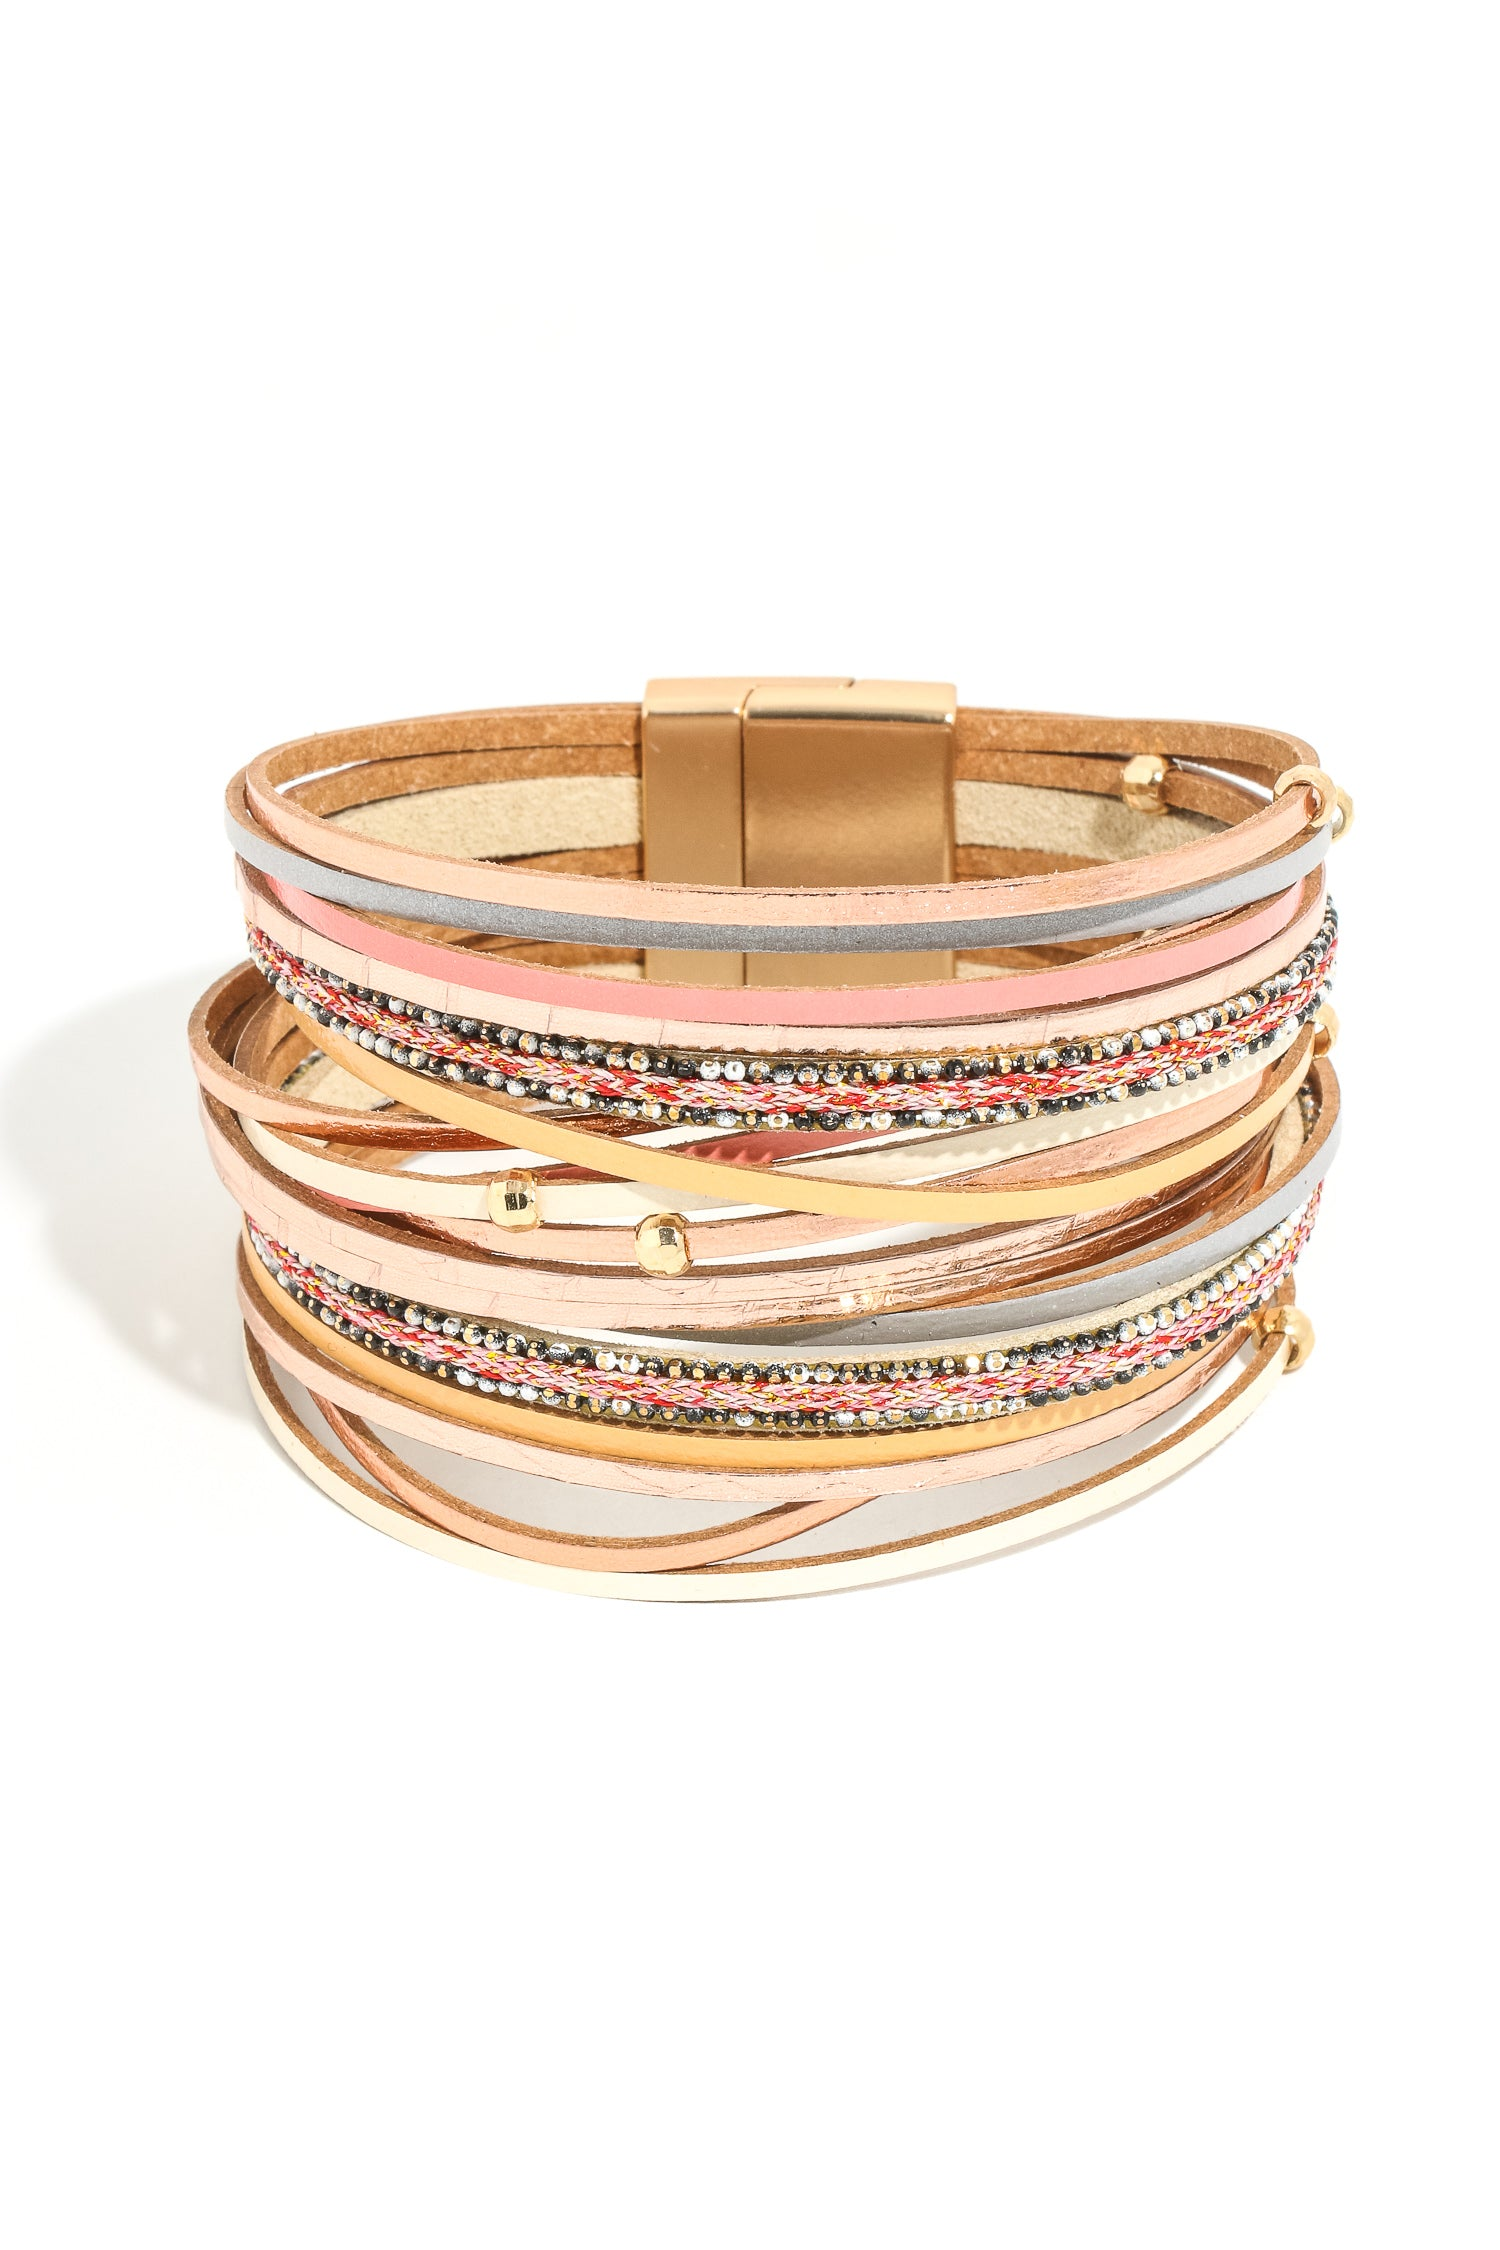 Layered Strands Magnetic Bracelet - besties STUDIOS